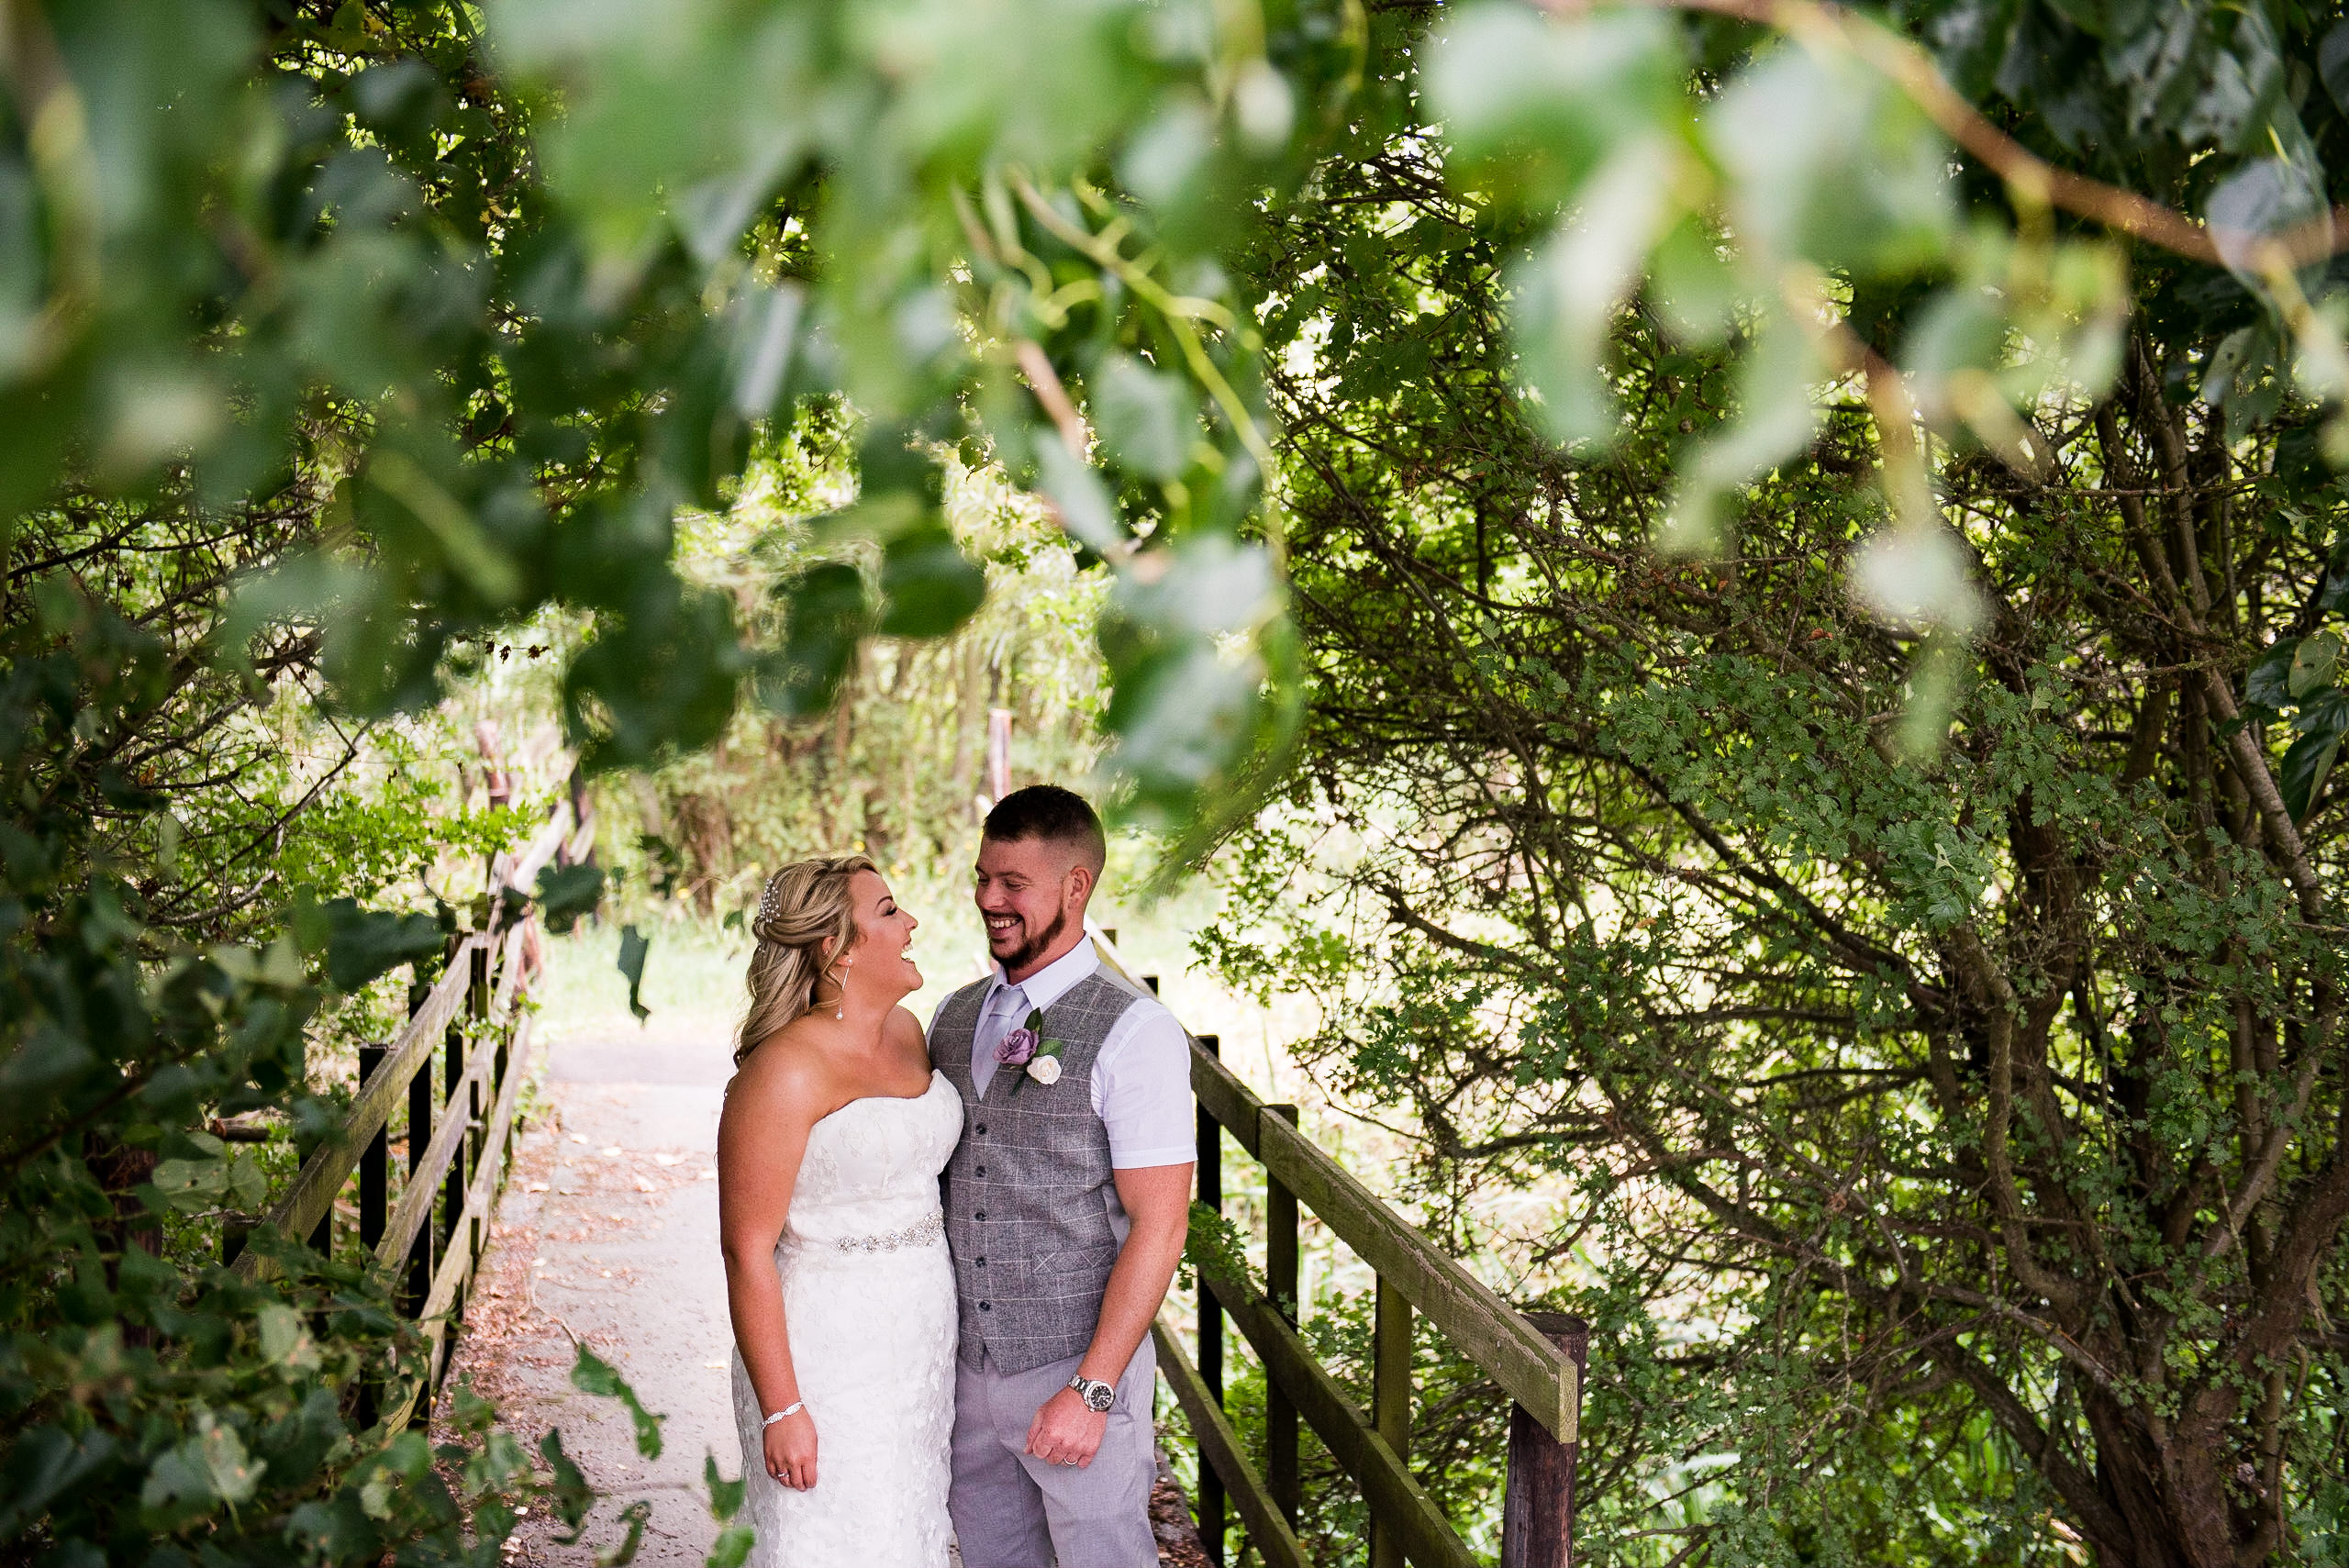 Wedding Photography, Grendon Lakes,